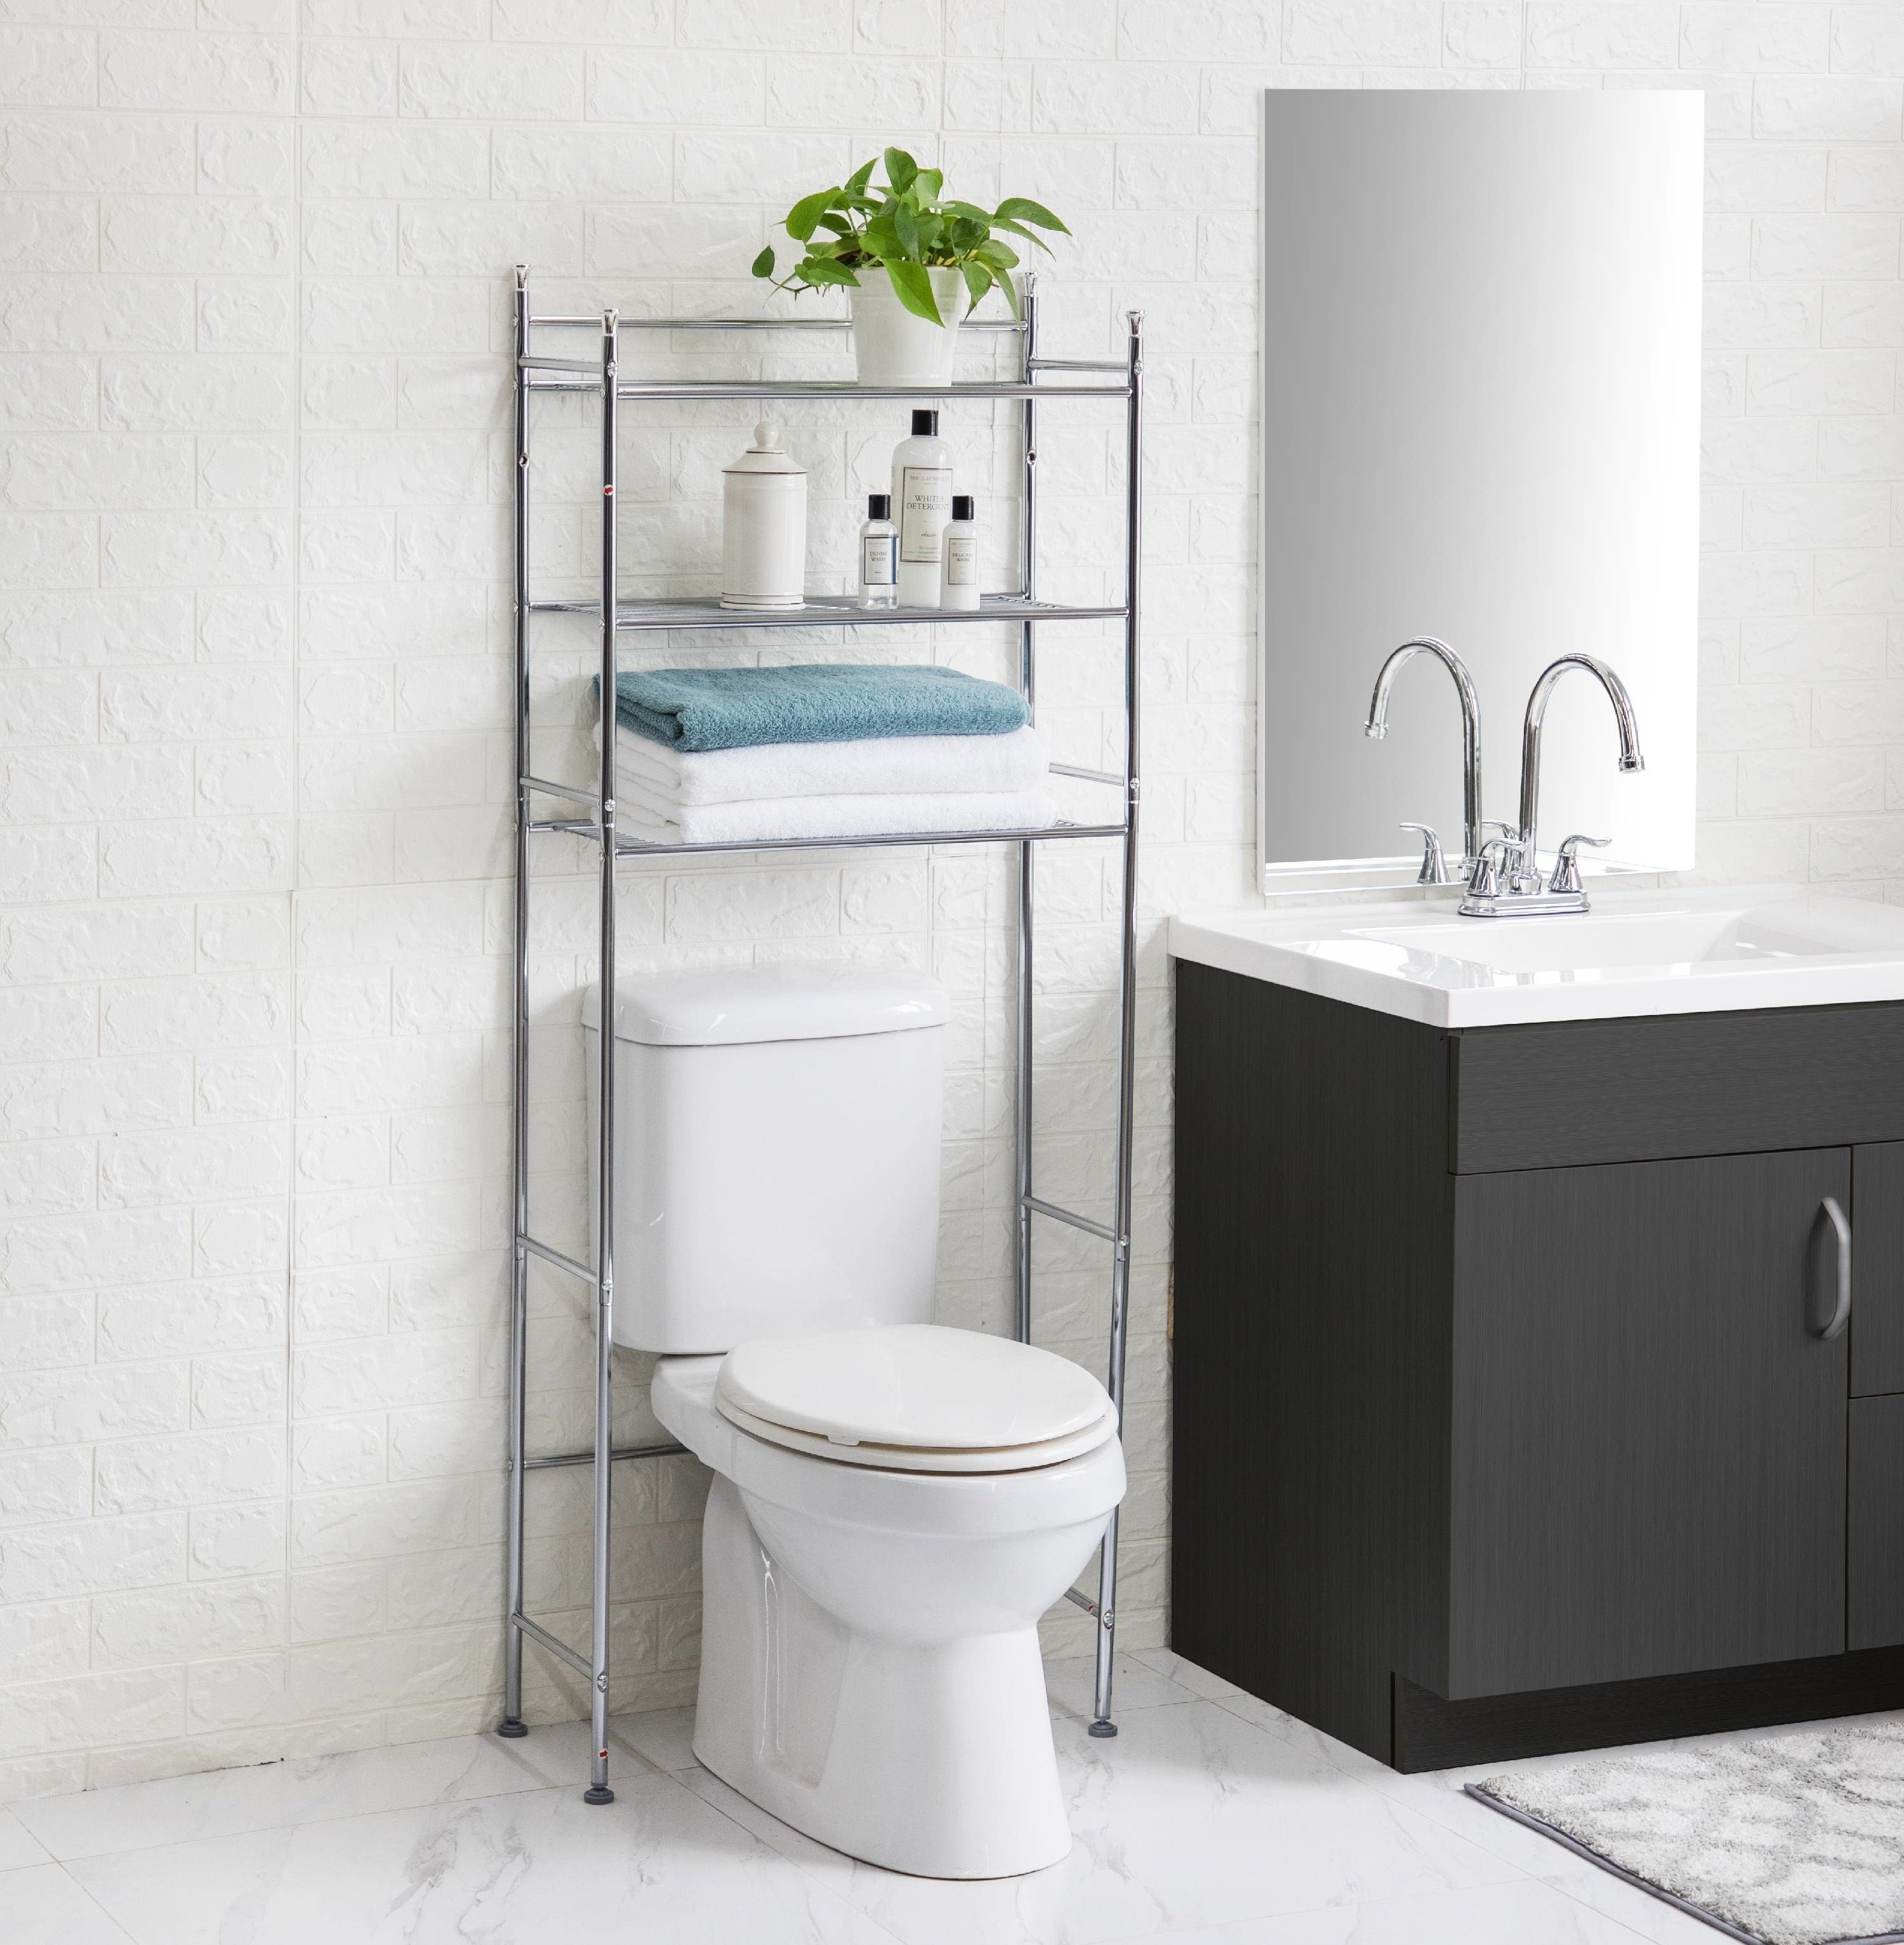 The organizer over a toilet